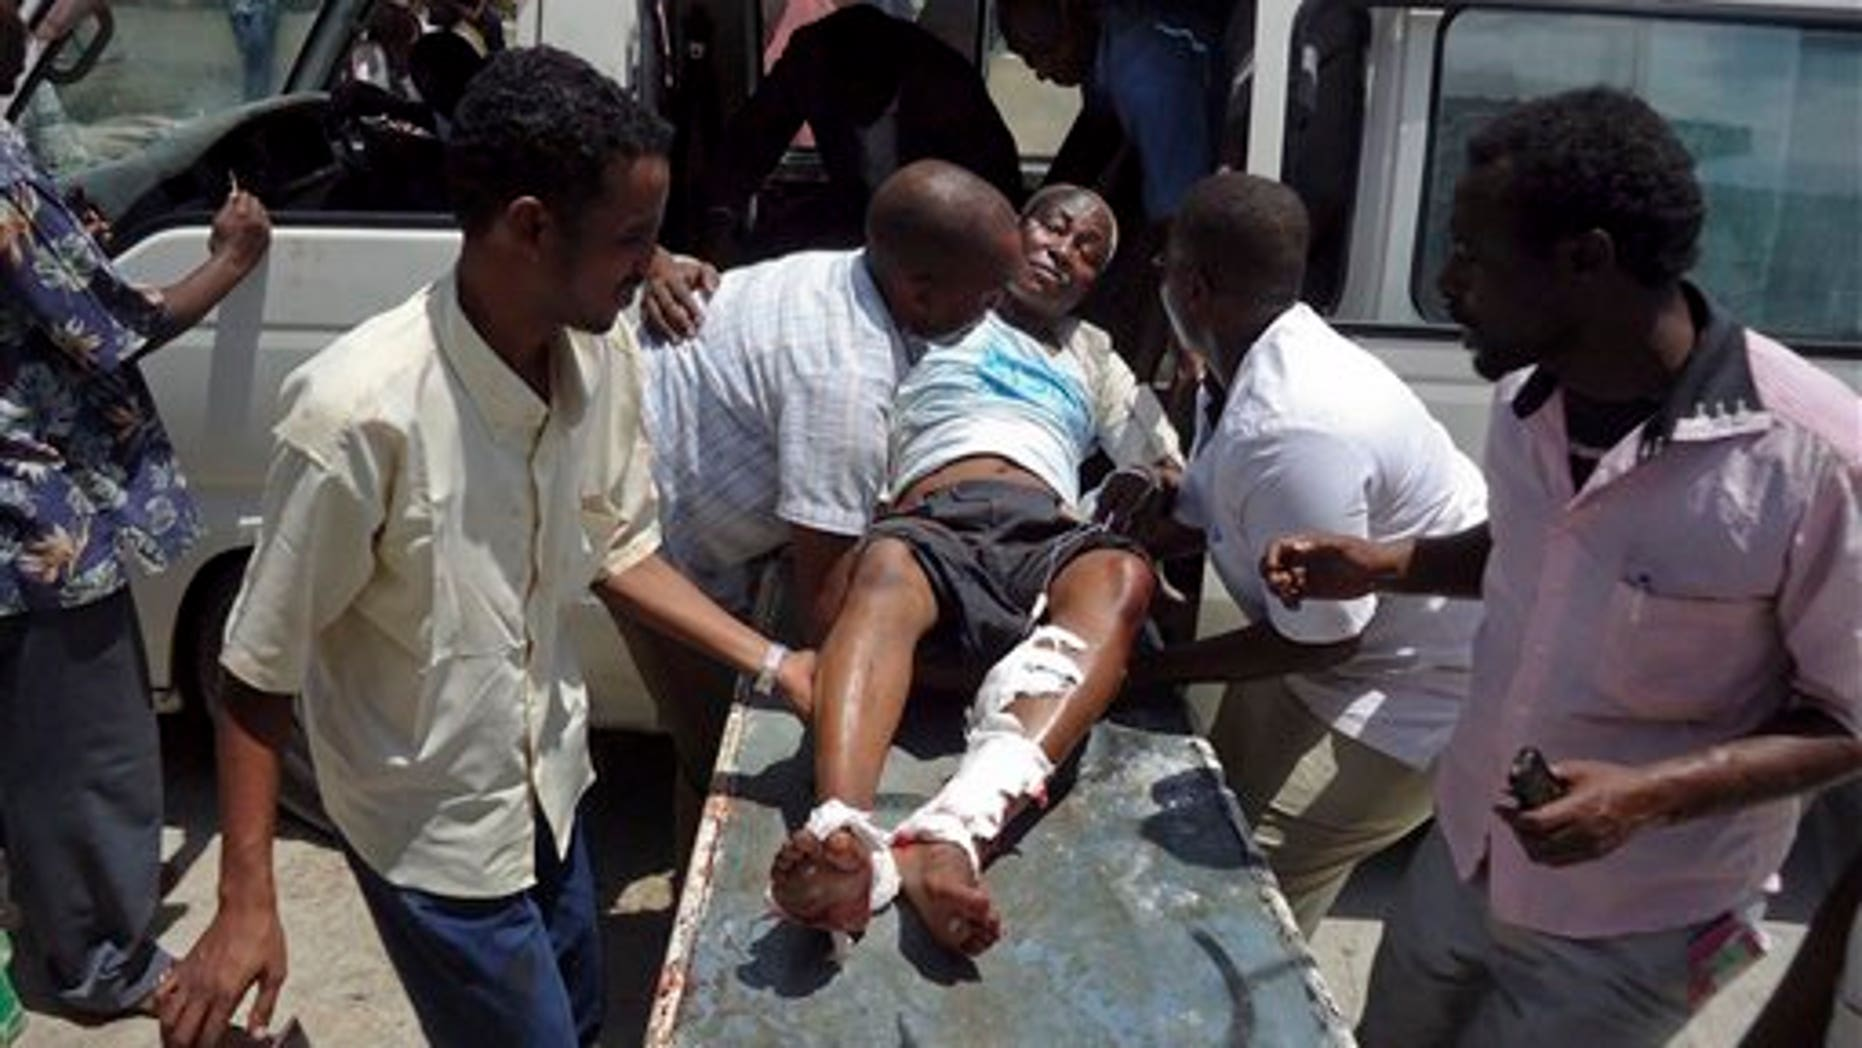 April 4, 2012: Medical personnel help a man wounded in a blast at the Somali National Theater in Mogadishu, Somalia.